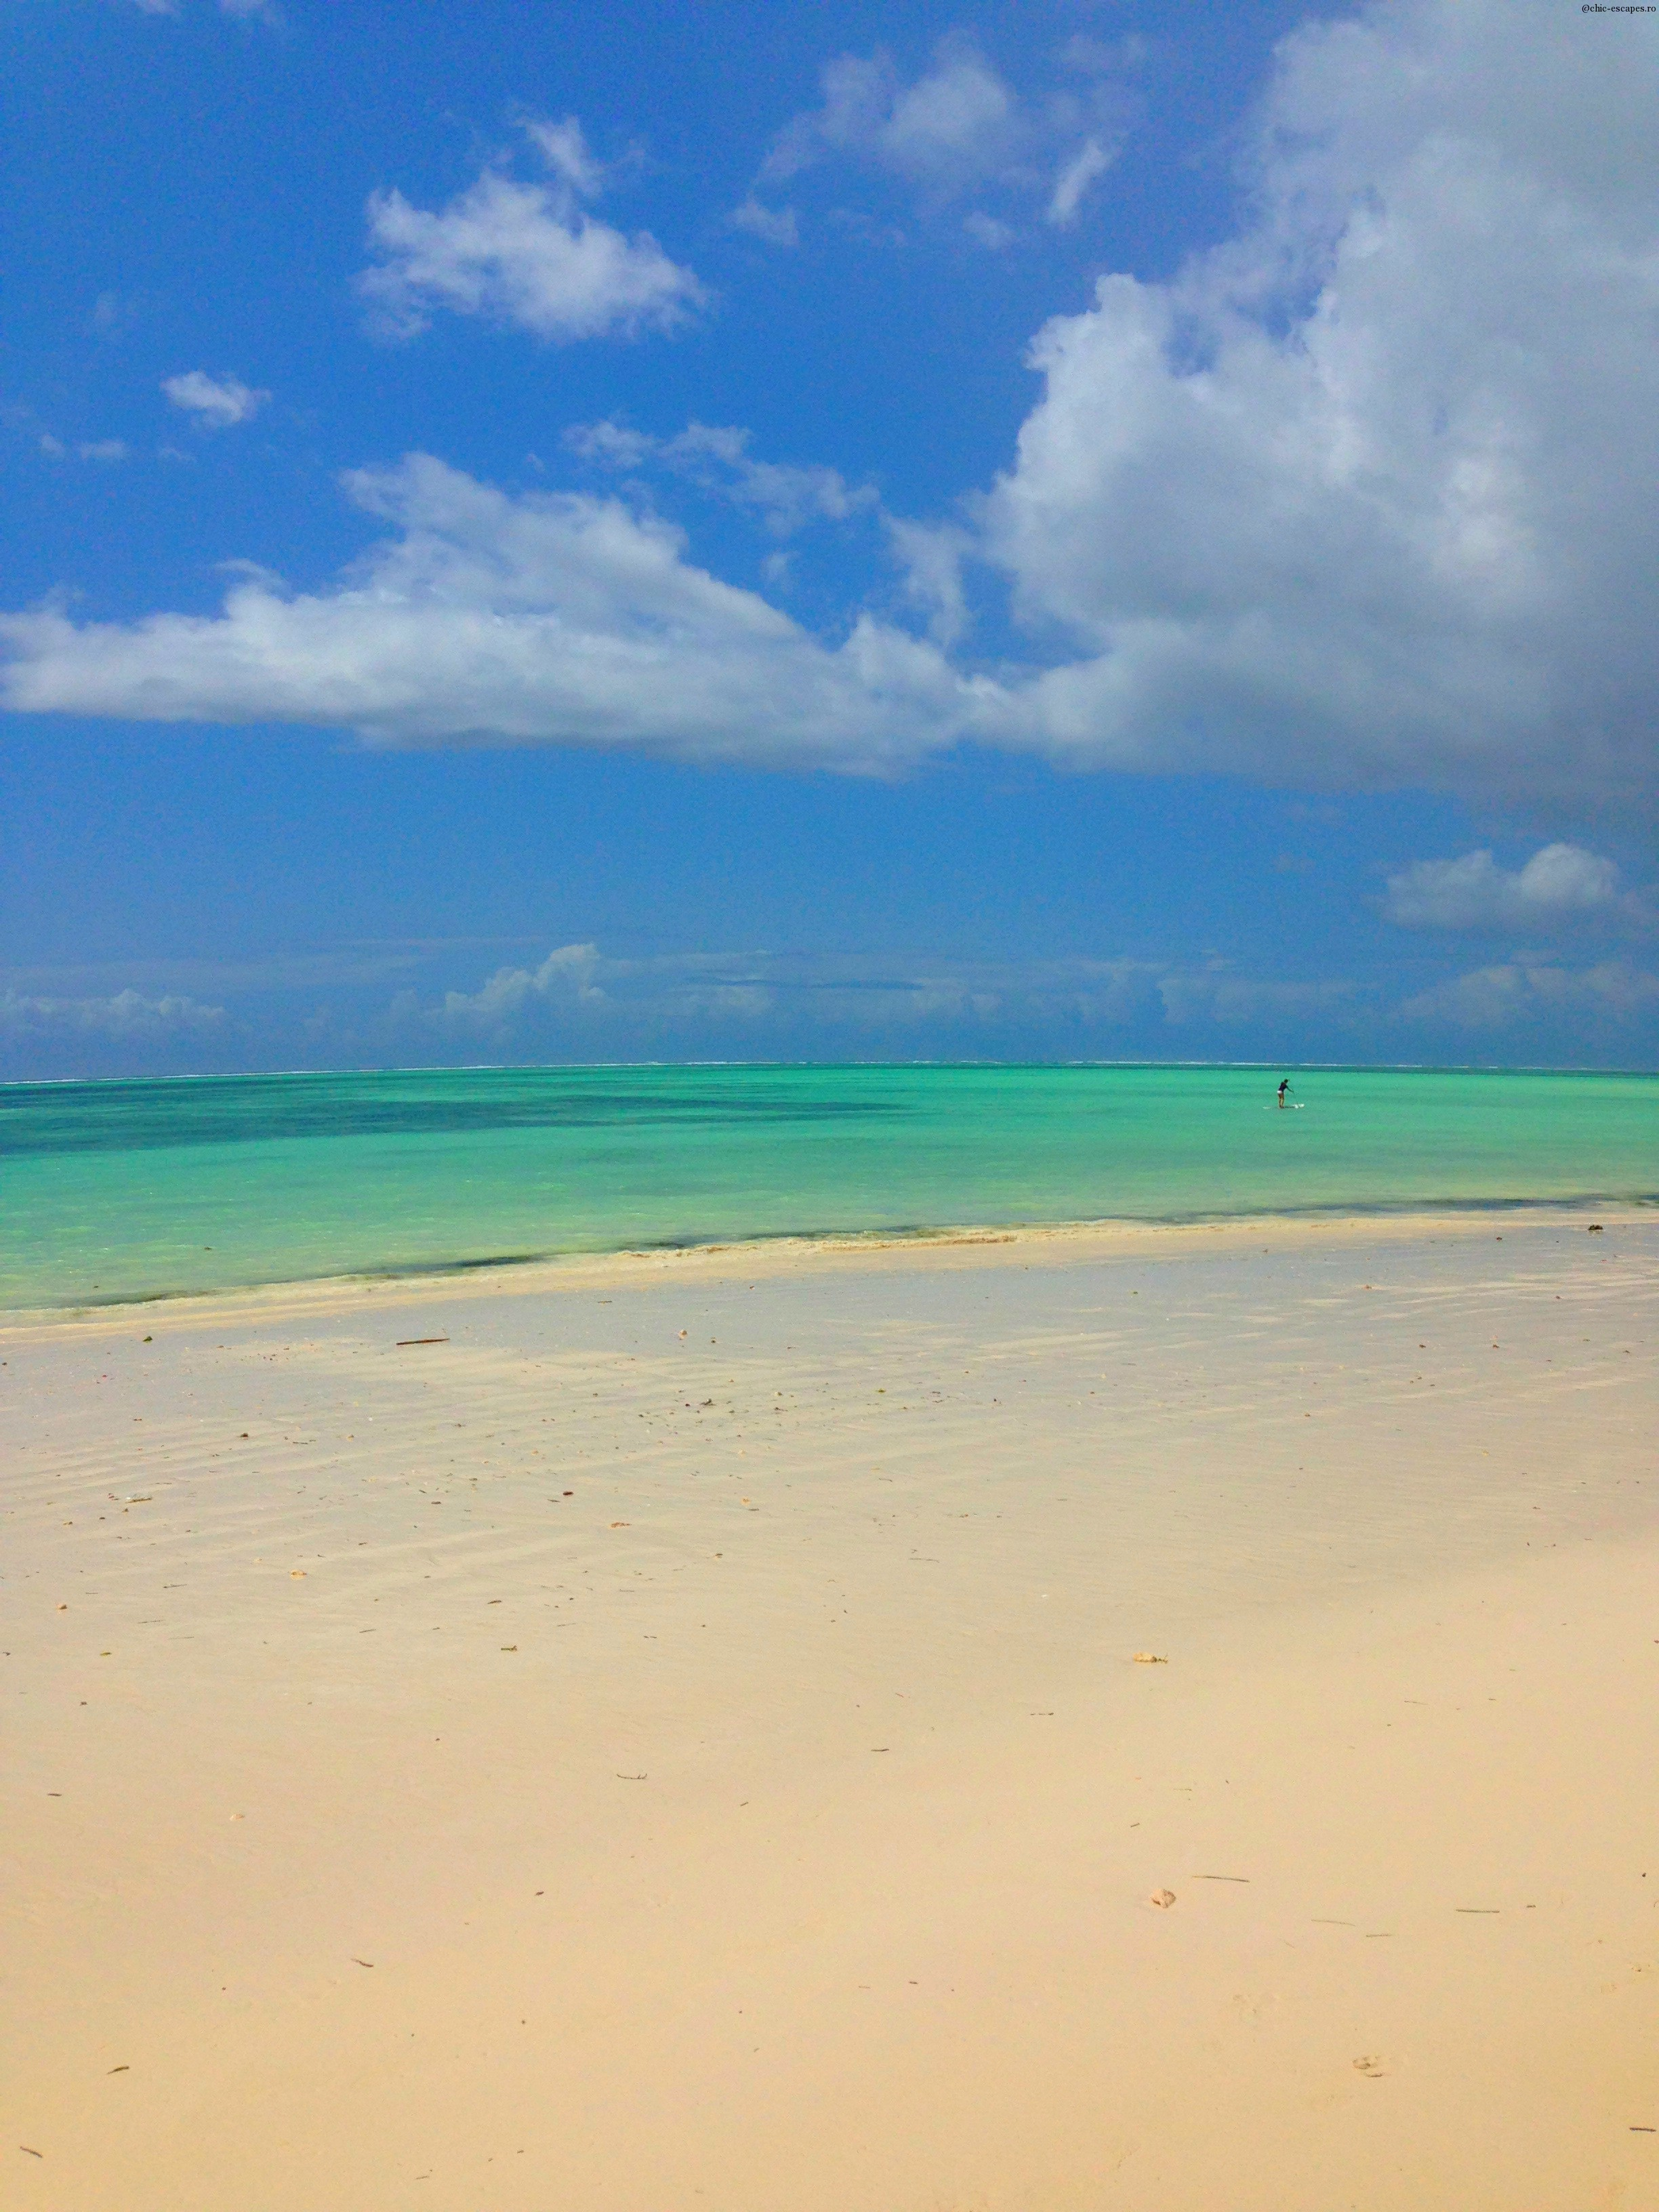 Zanzibar, best beaches ever:)